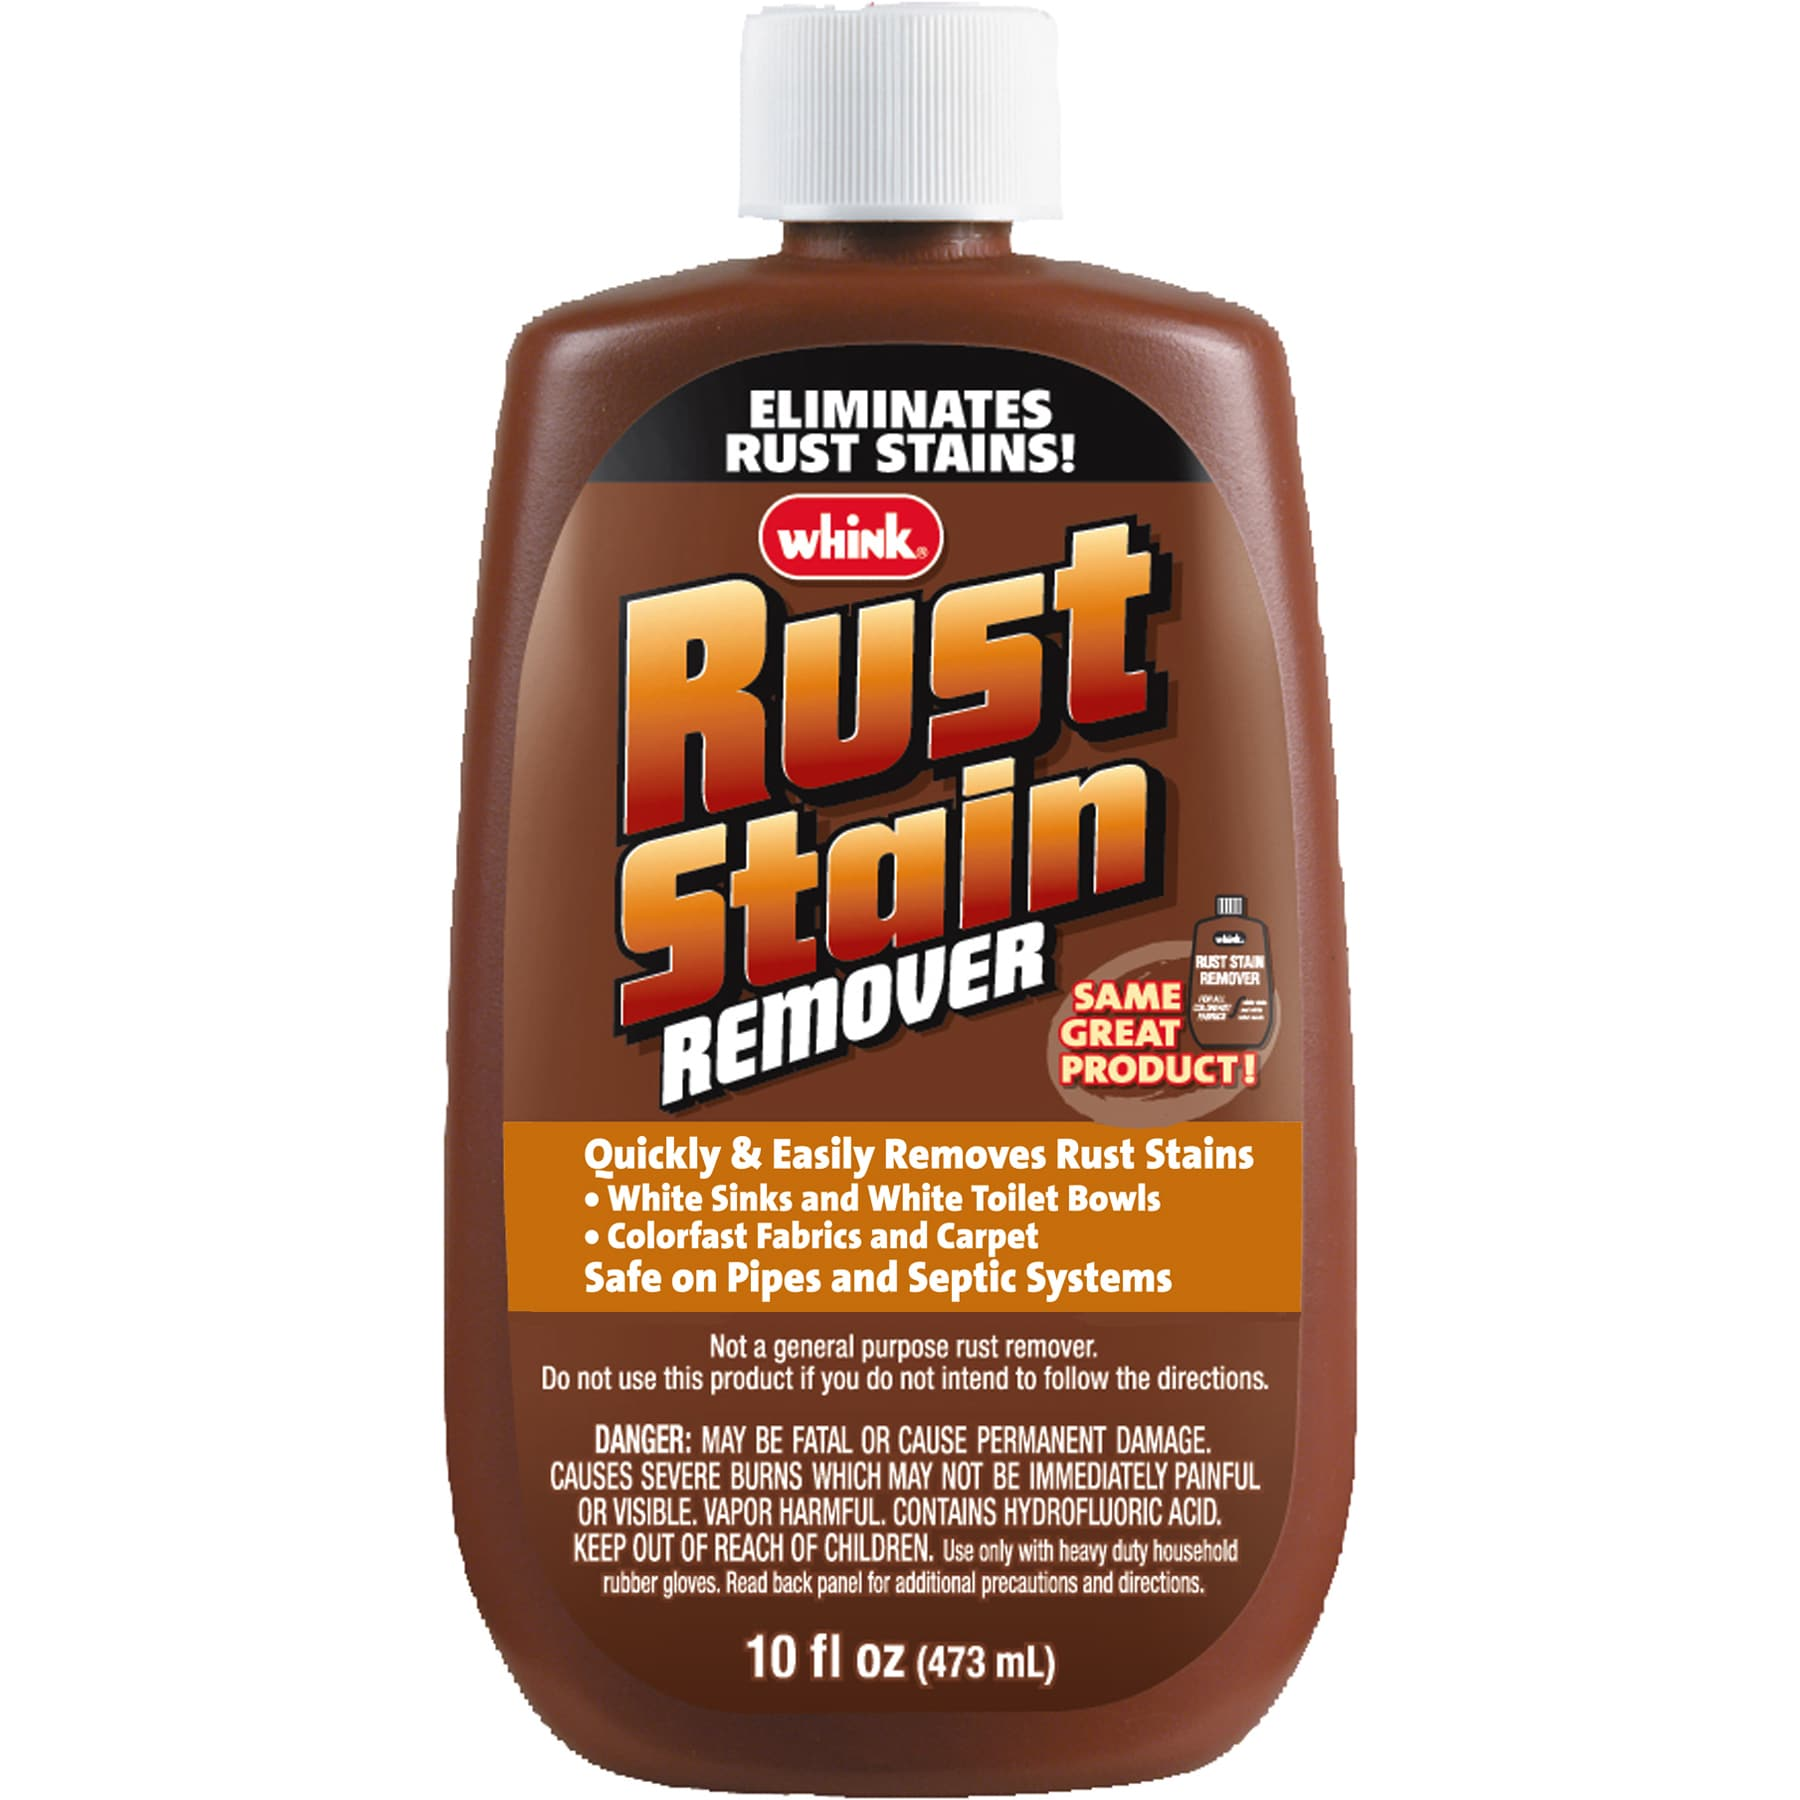 Whink Products 01081 10 Oz Rust (Red) Stain Remover (Clea...